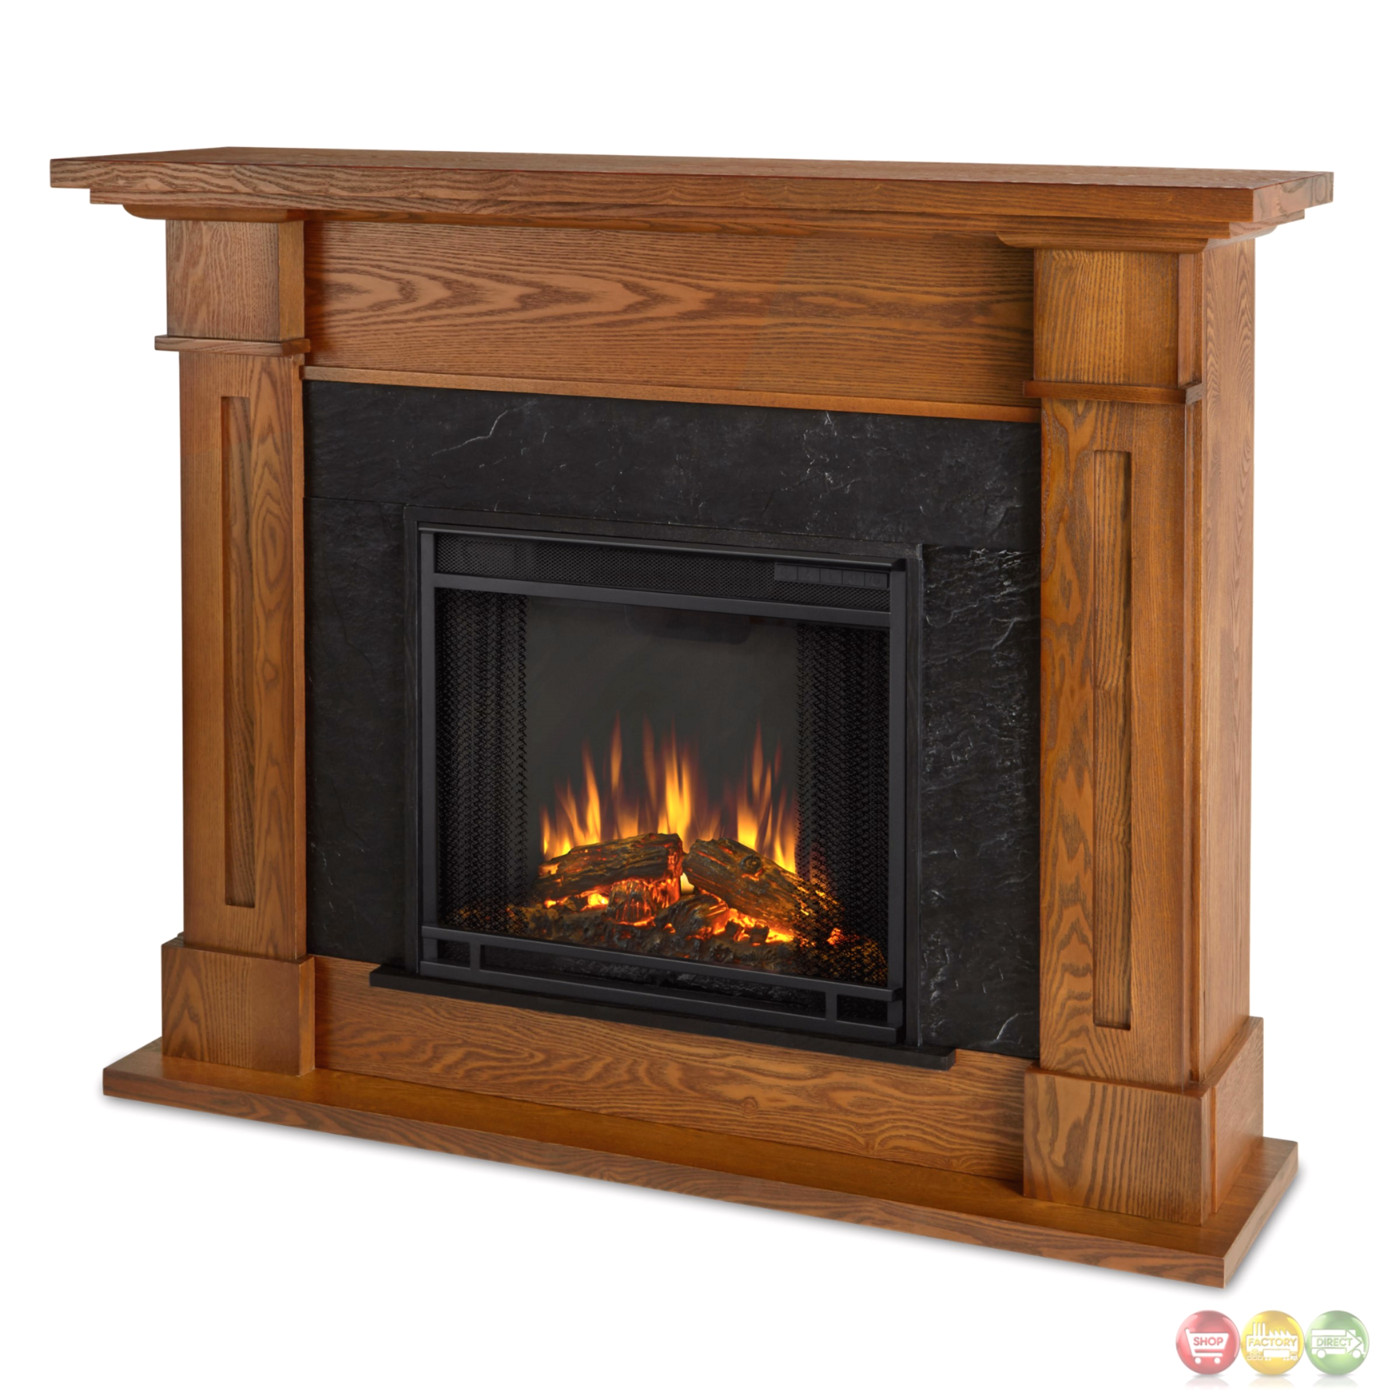 Kipling Electric Heater Led Fireplace In Burnished Oak